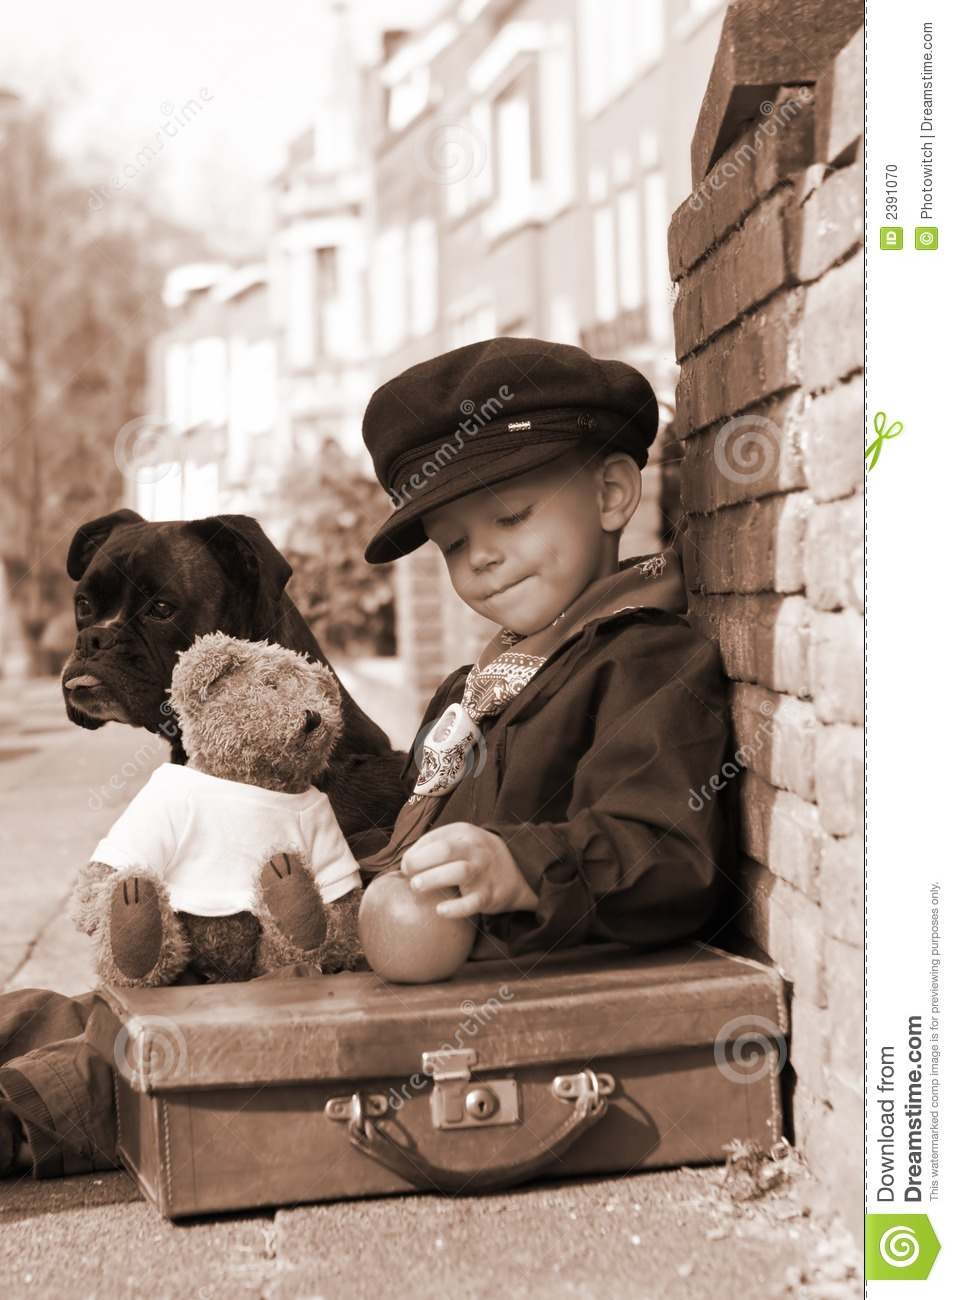 Vintage Boy In Sepia Stock Photo. Image Of Packing